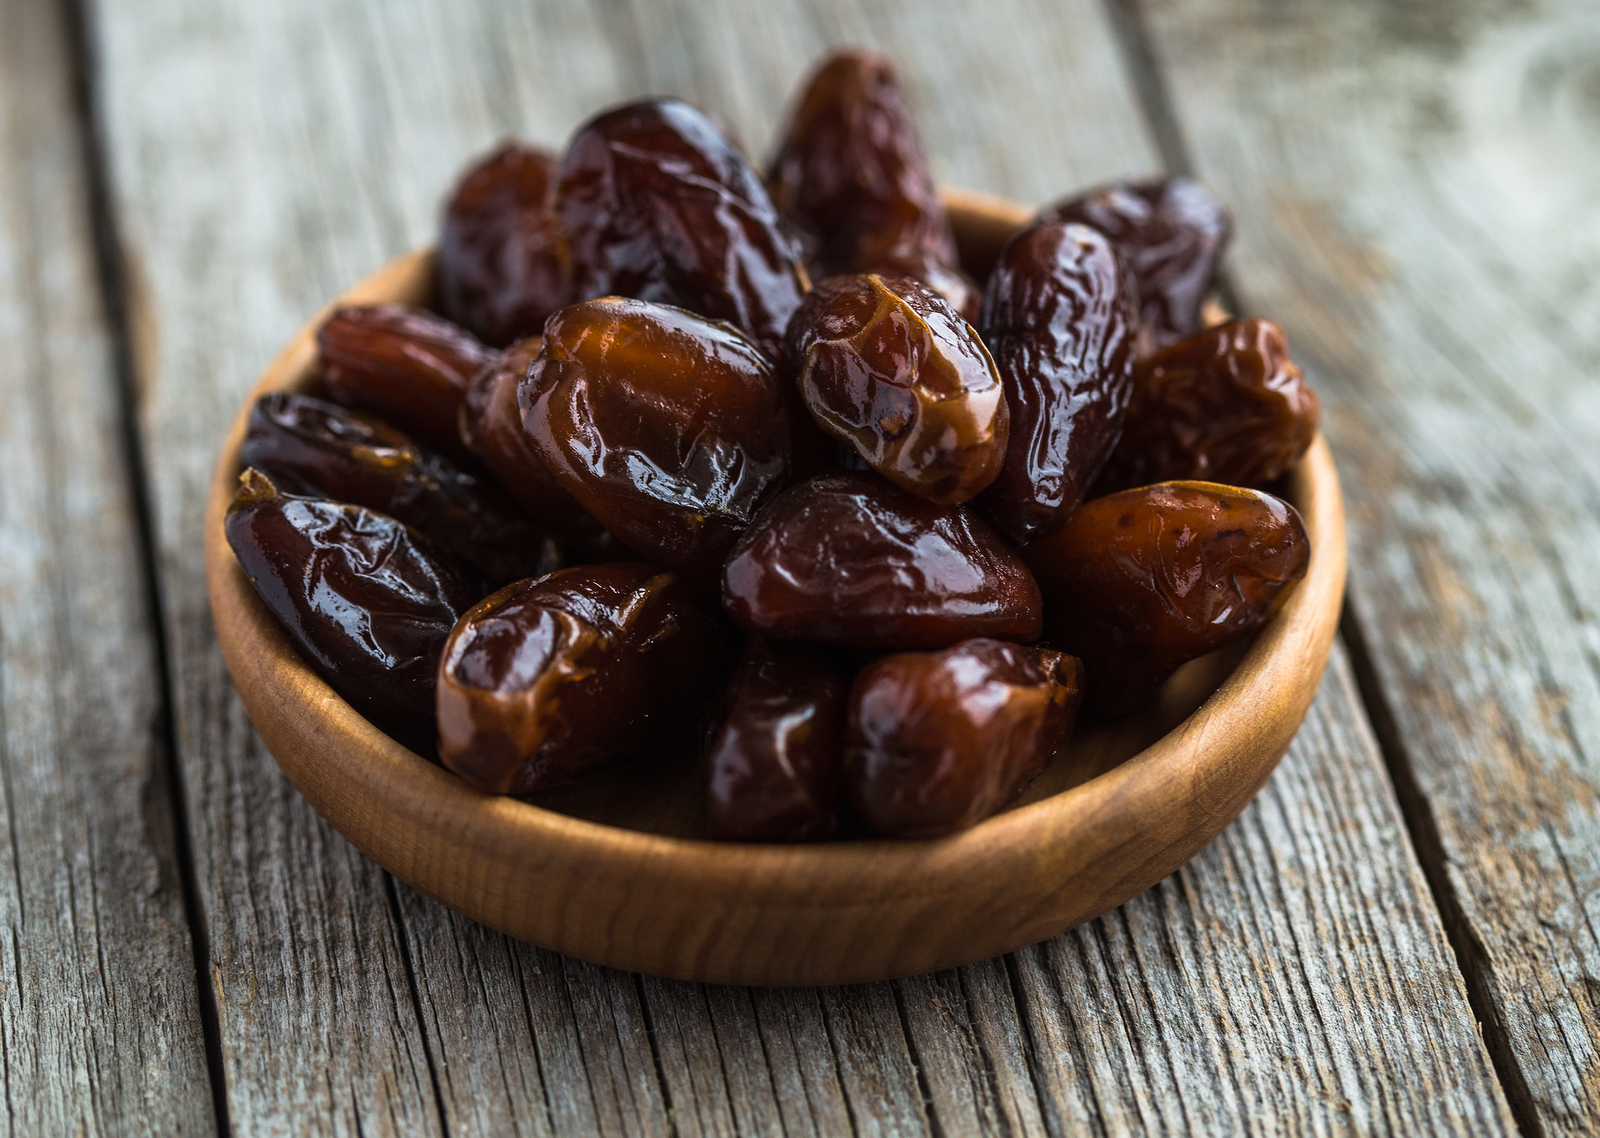 Looking for Date (Recipe) Ideas? We Hear You!